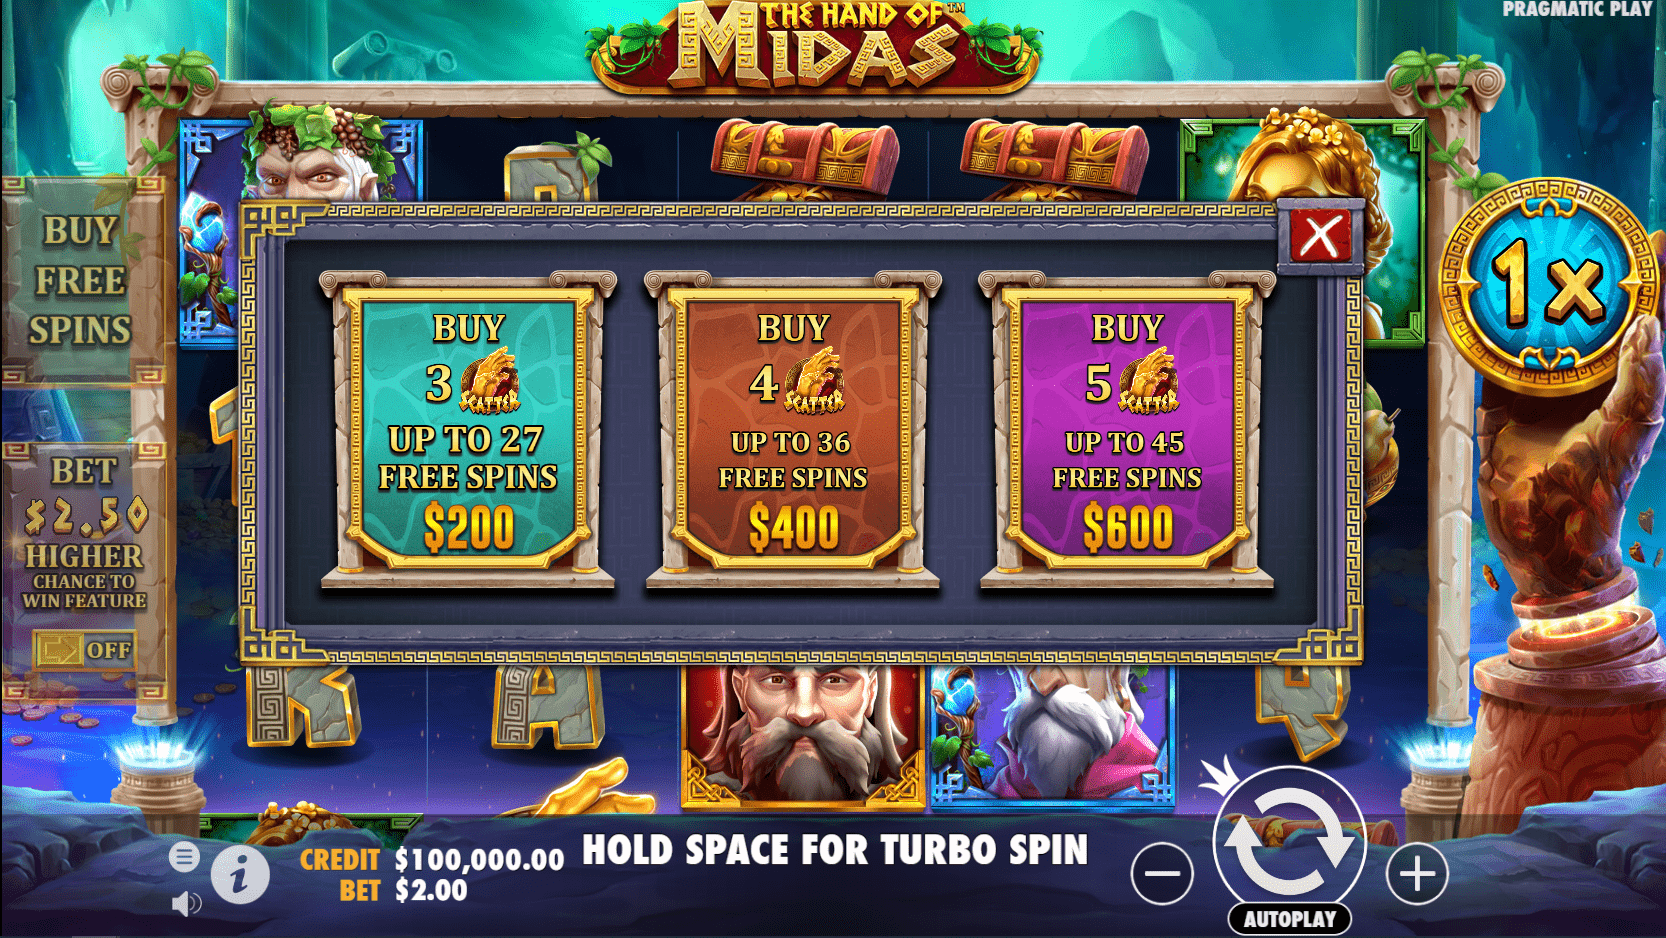 The Hand of Midas Video Slot Free Spins Buy